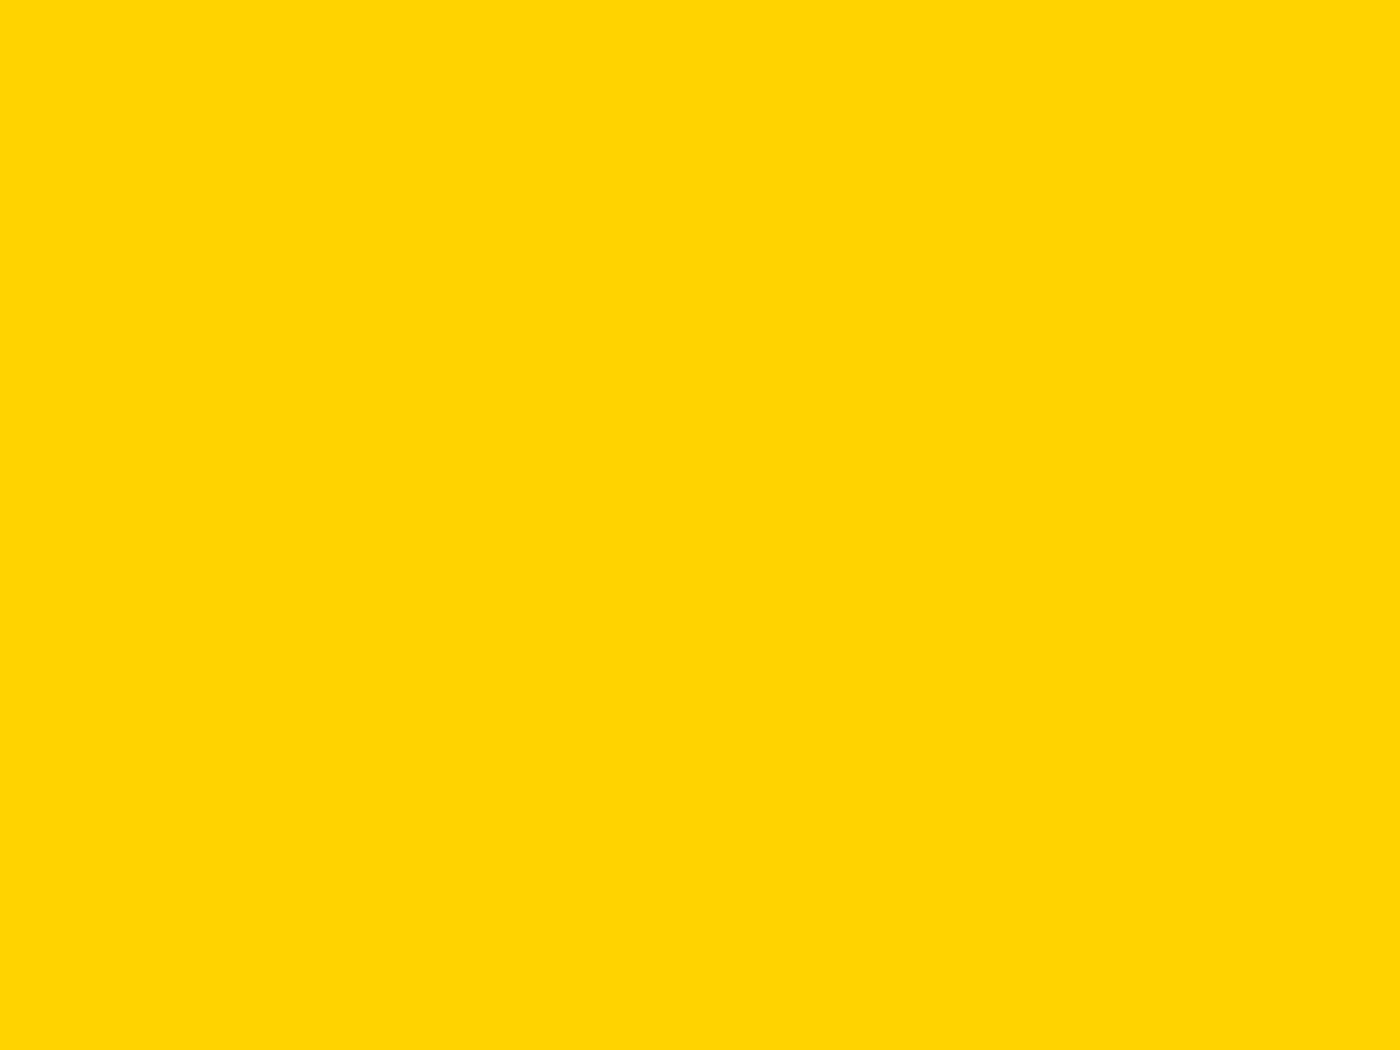 1400x1050 Cyber Yellow Solid Color Background